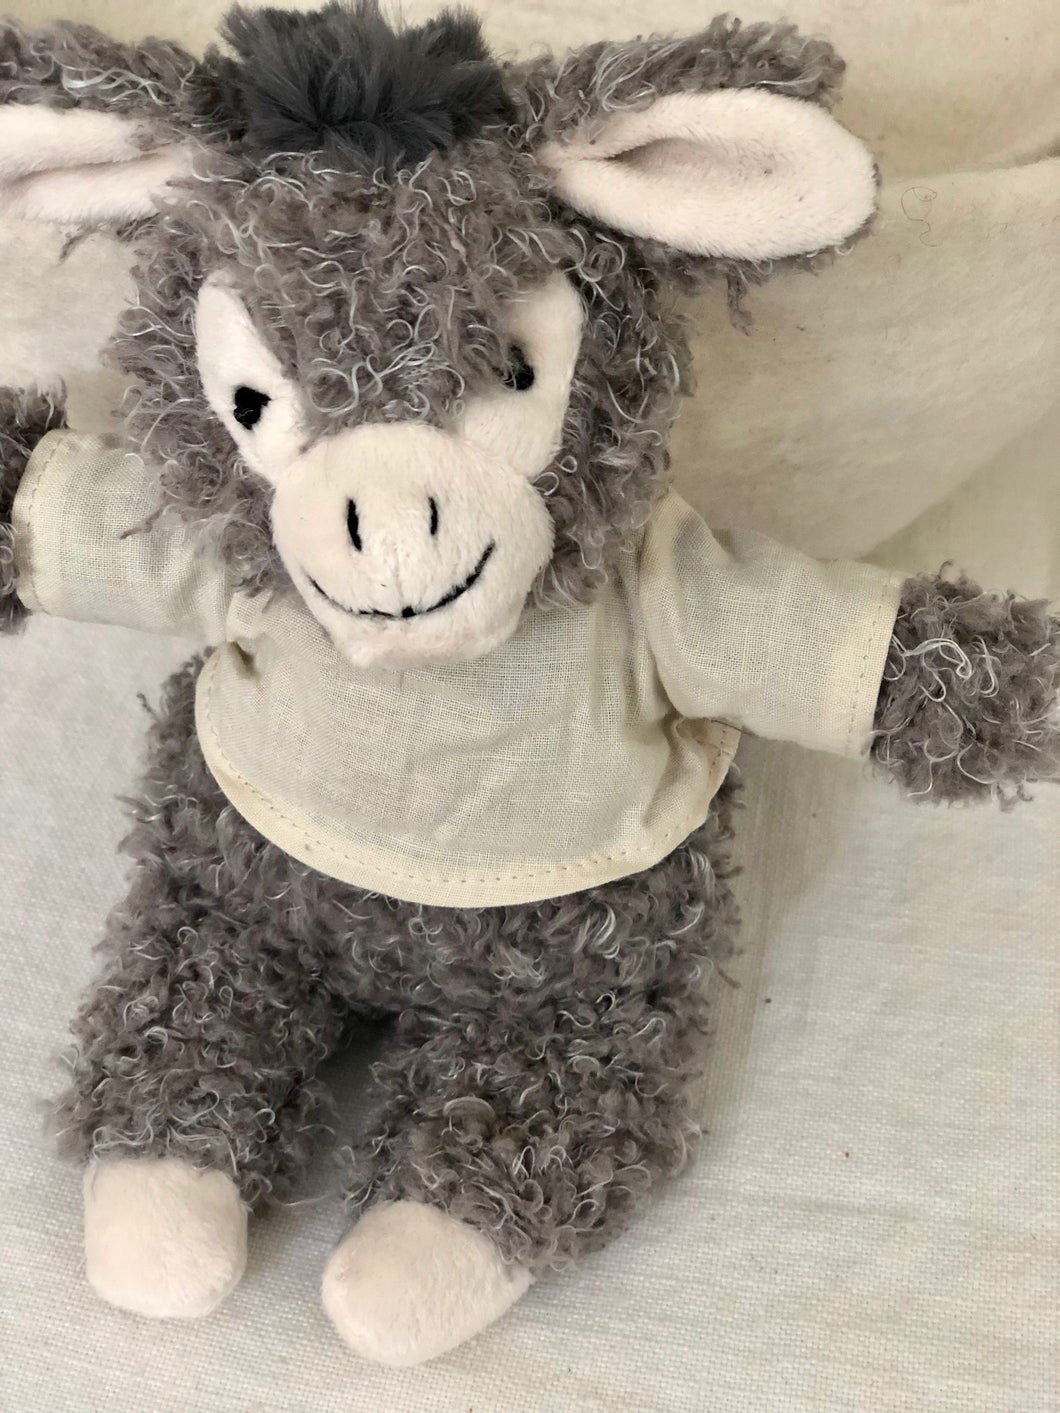 Mule soft toys